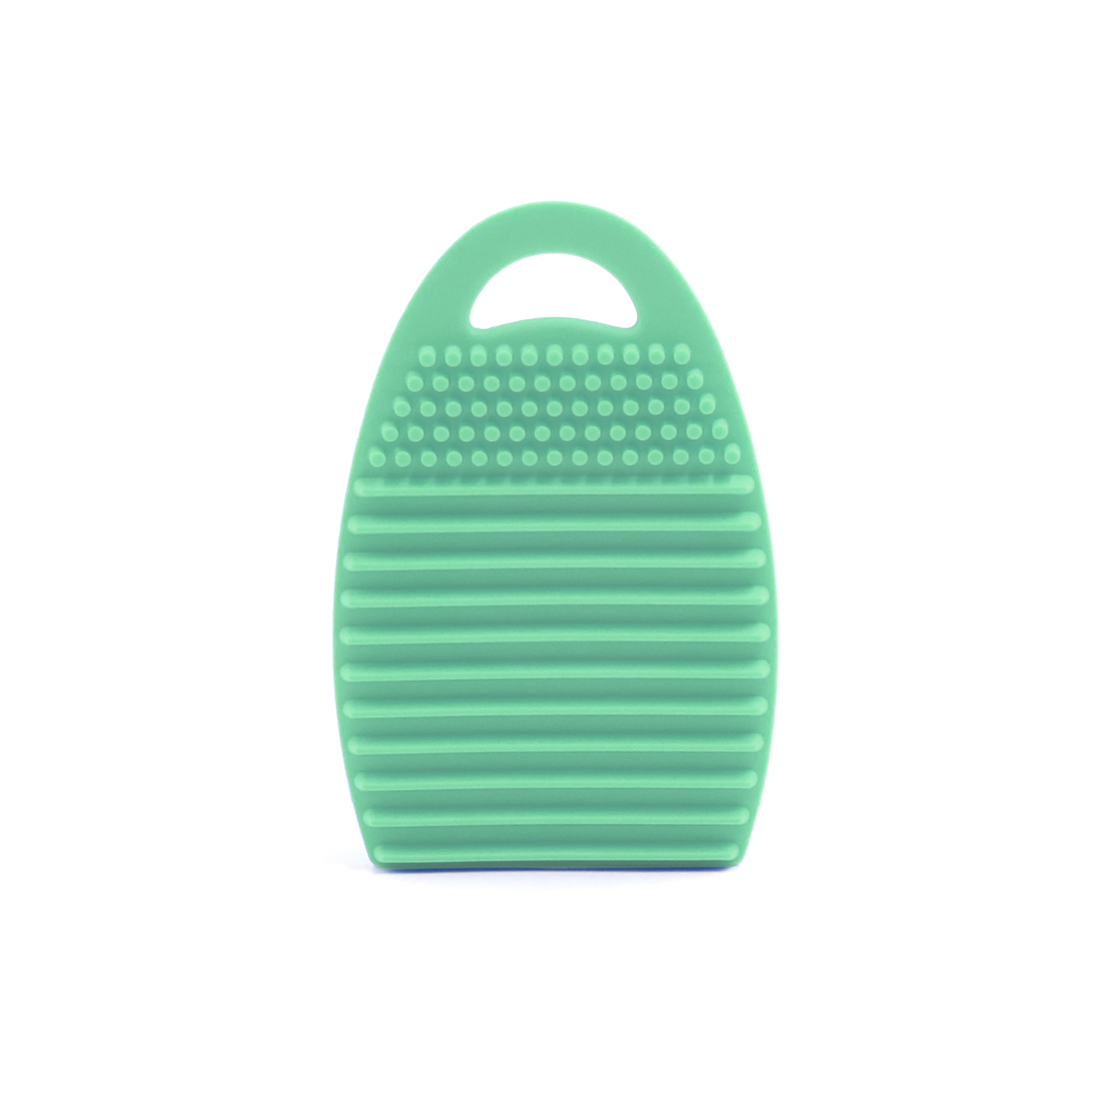 Silicone Makeup Brush Cleaner Pad Washing Scrubber Finger Cap Cleaning Mat Green